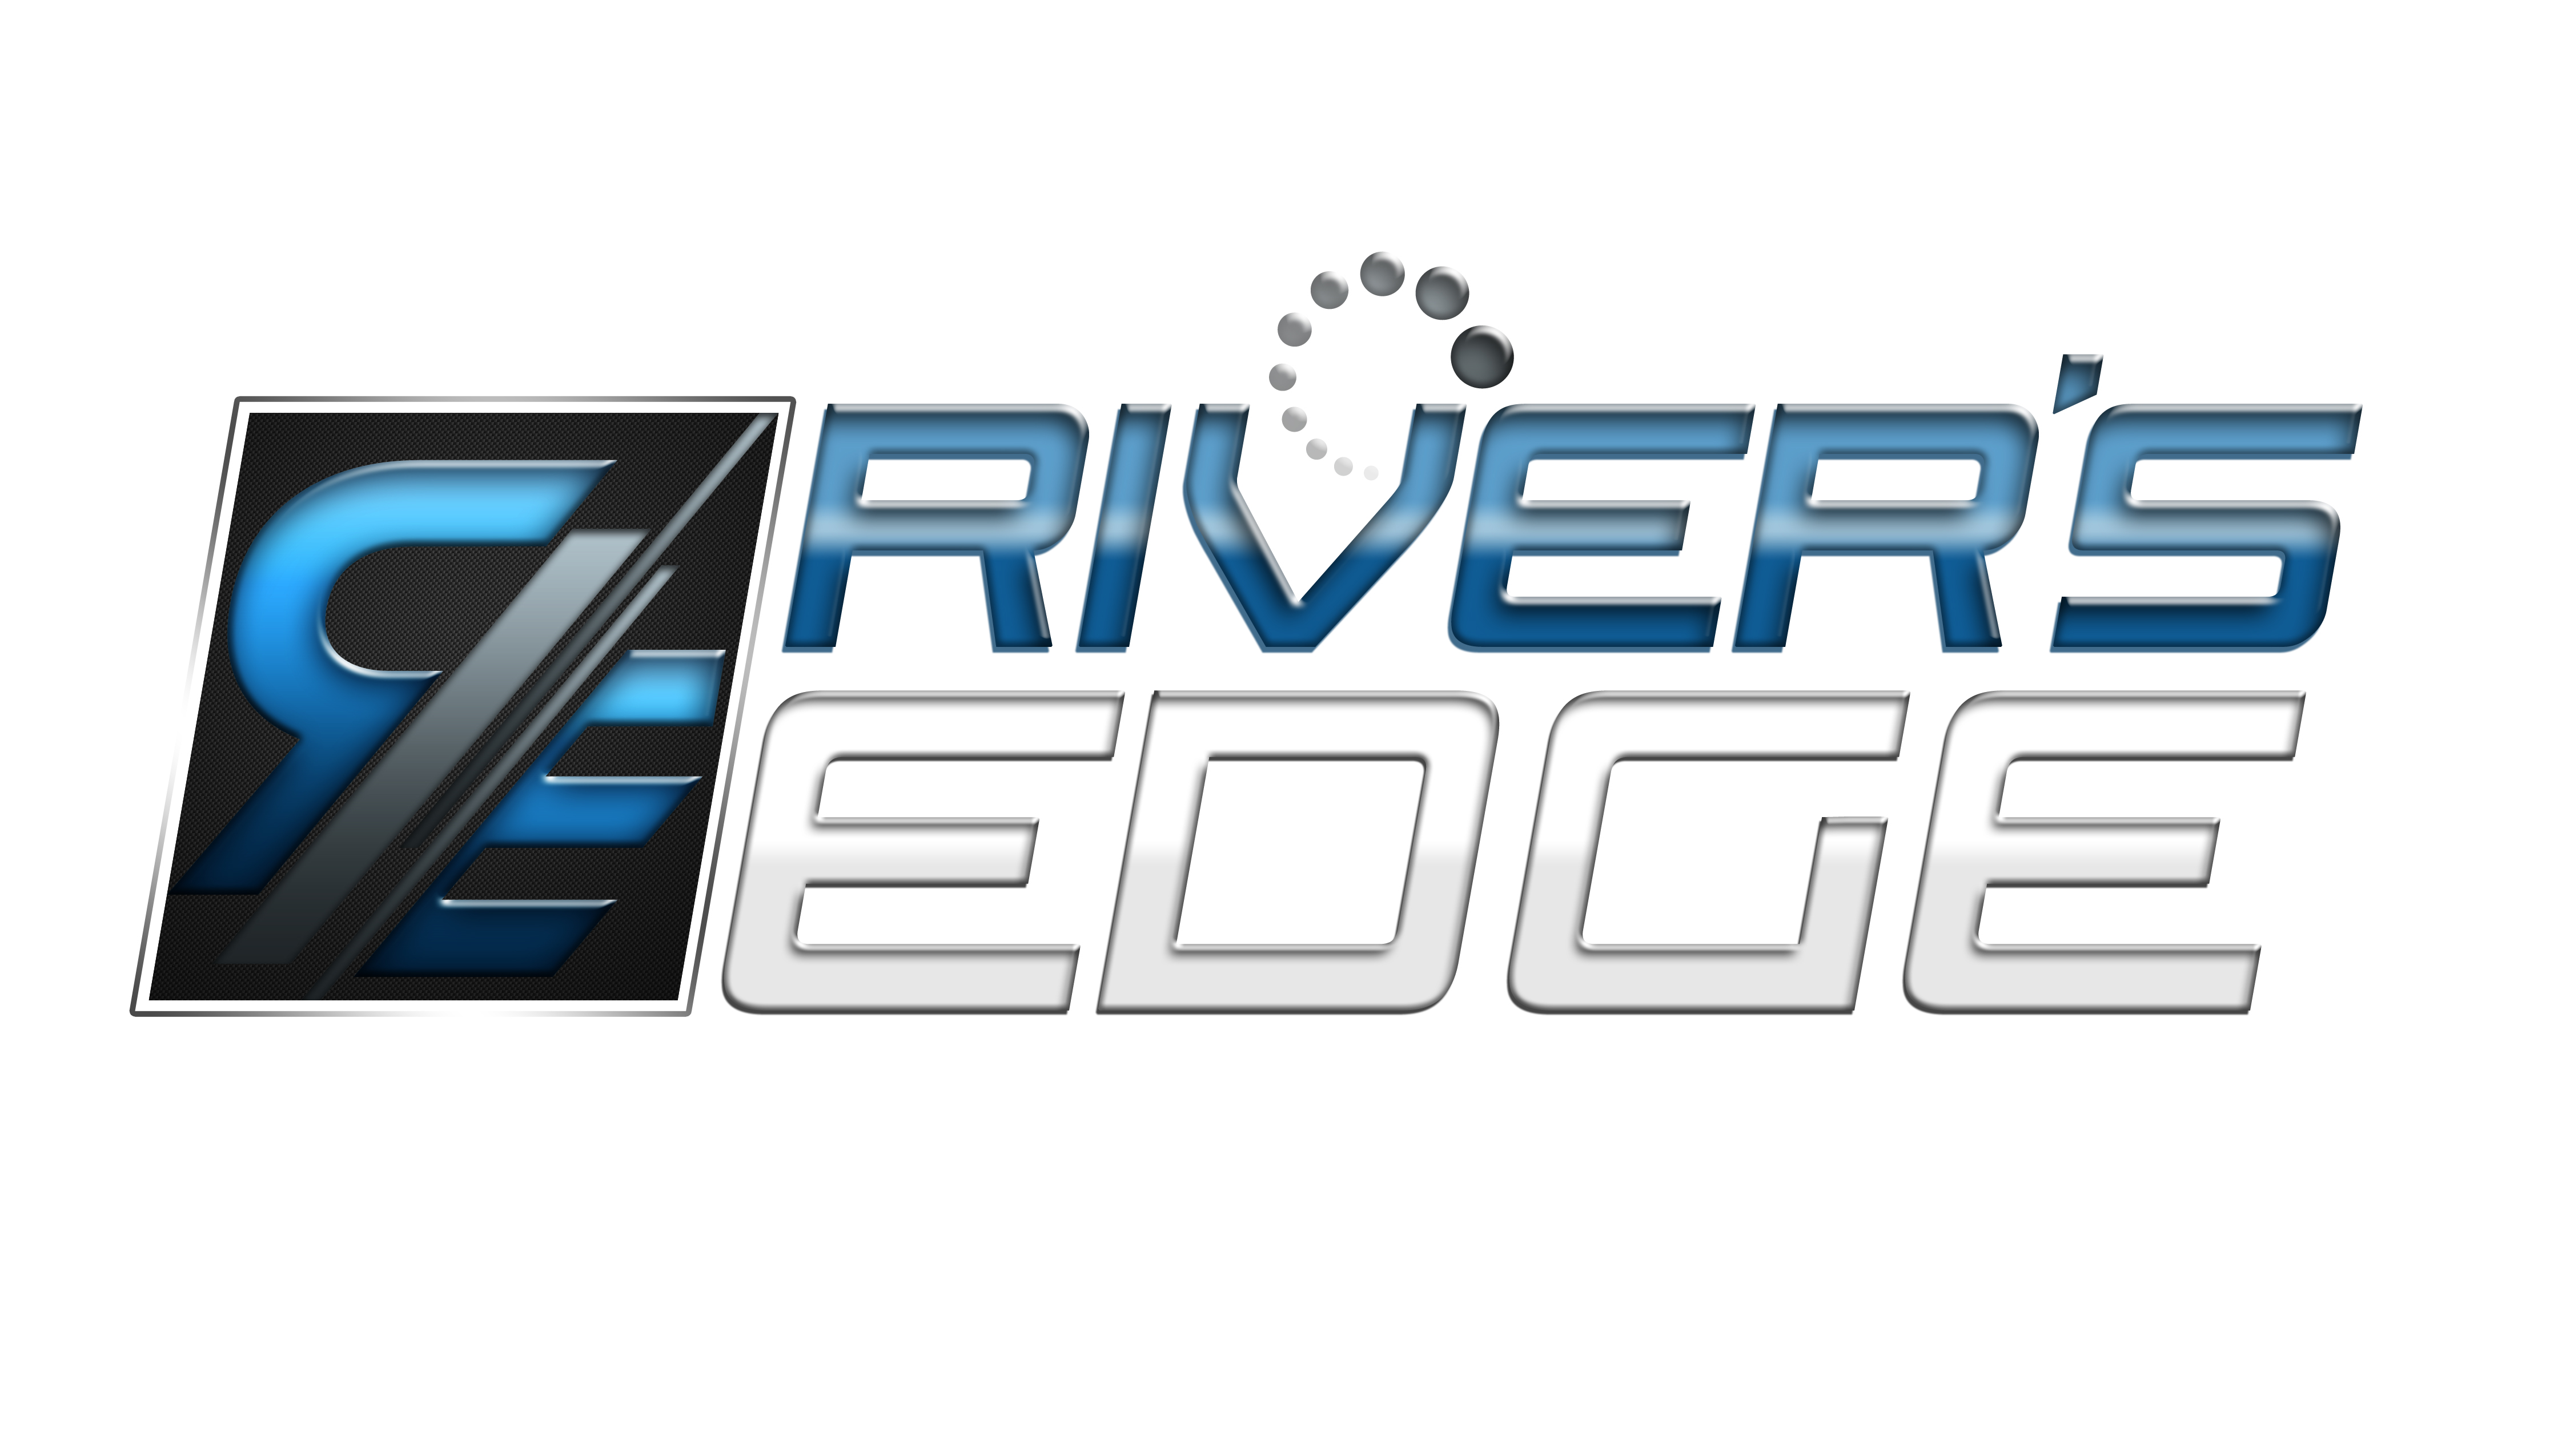 river edge dating site River's edge products, inc one river's edge court st clair, mo 63077 phone: 888-326-6200 fax: 636-629-7557 ©2018 river's edge products, inc.